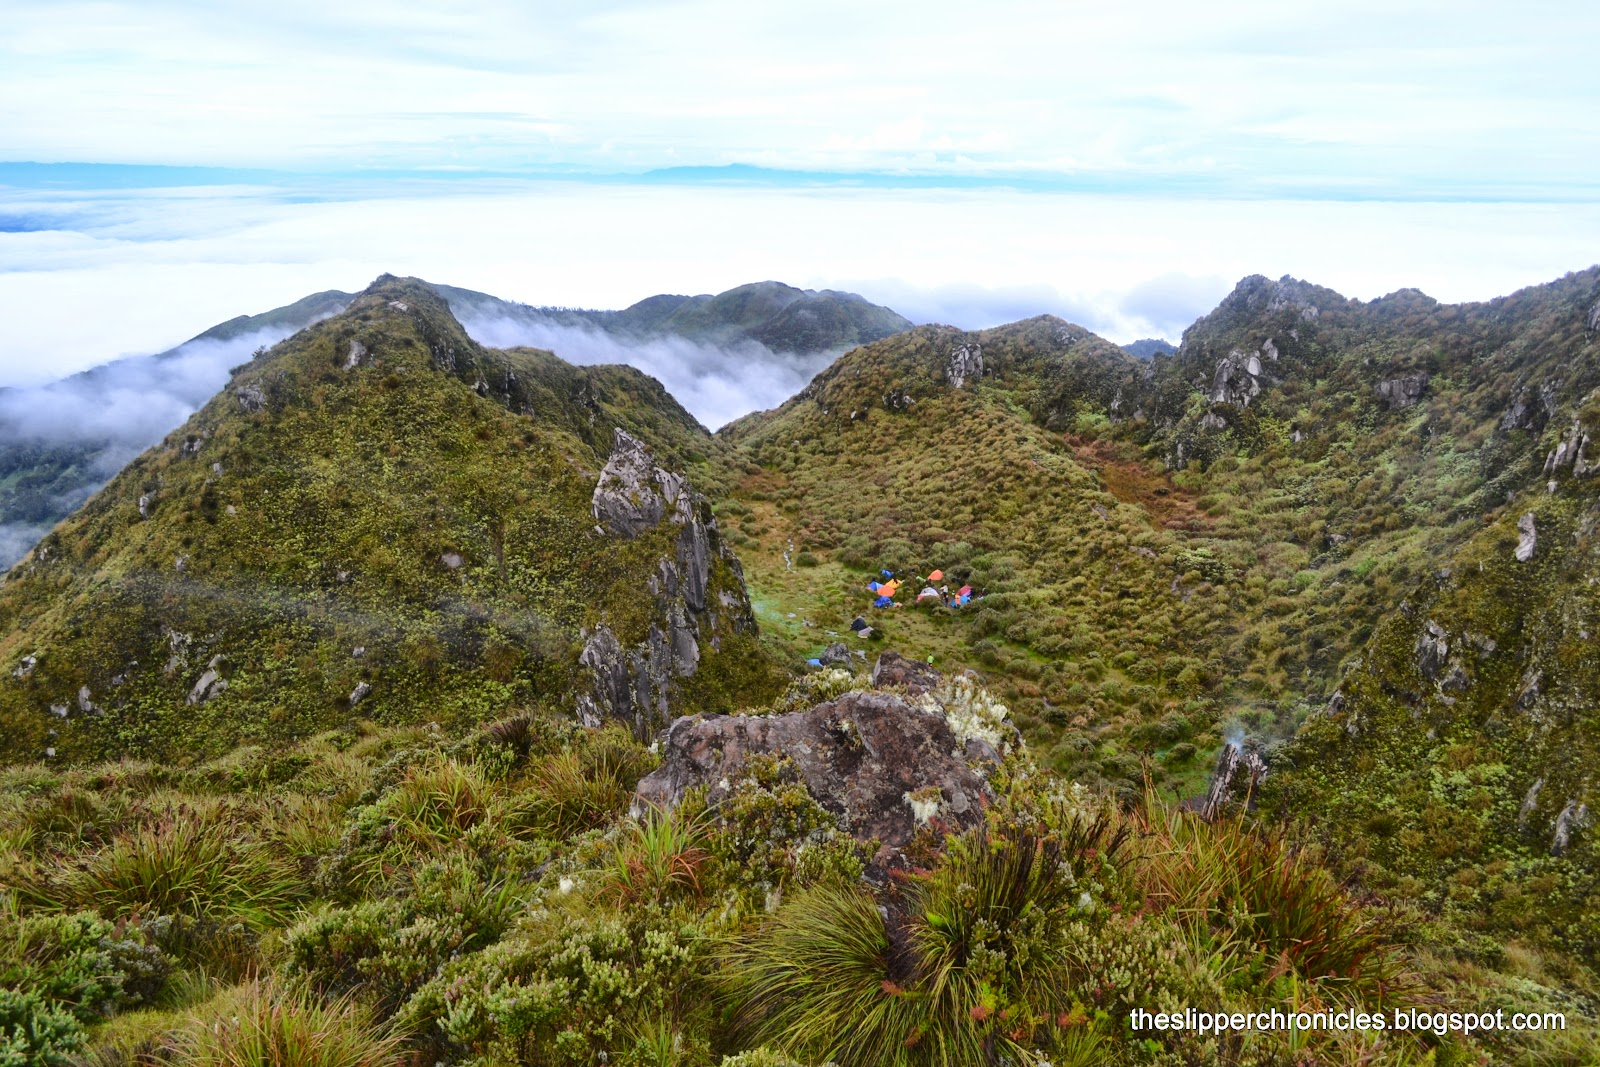 Camping at Mount Apo